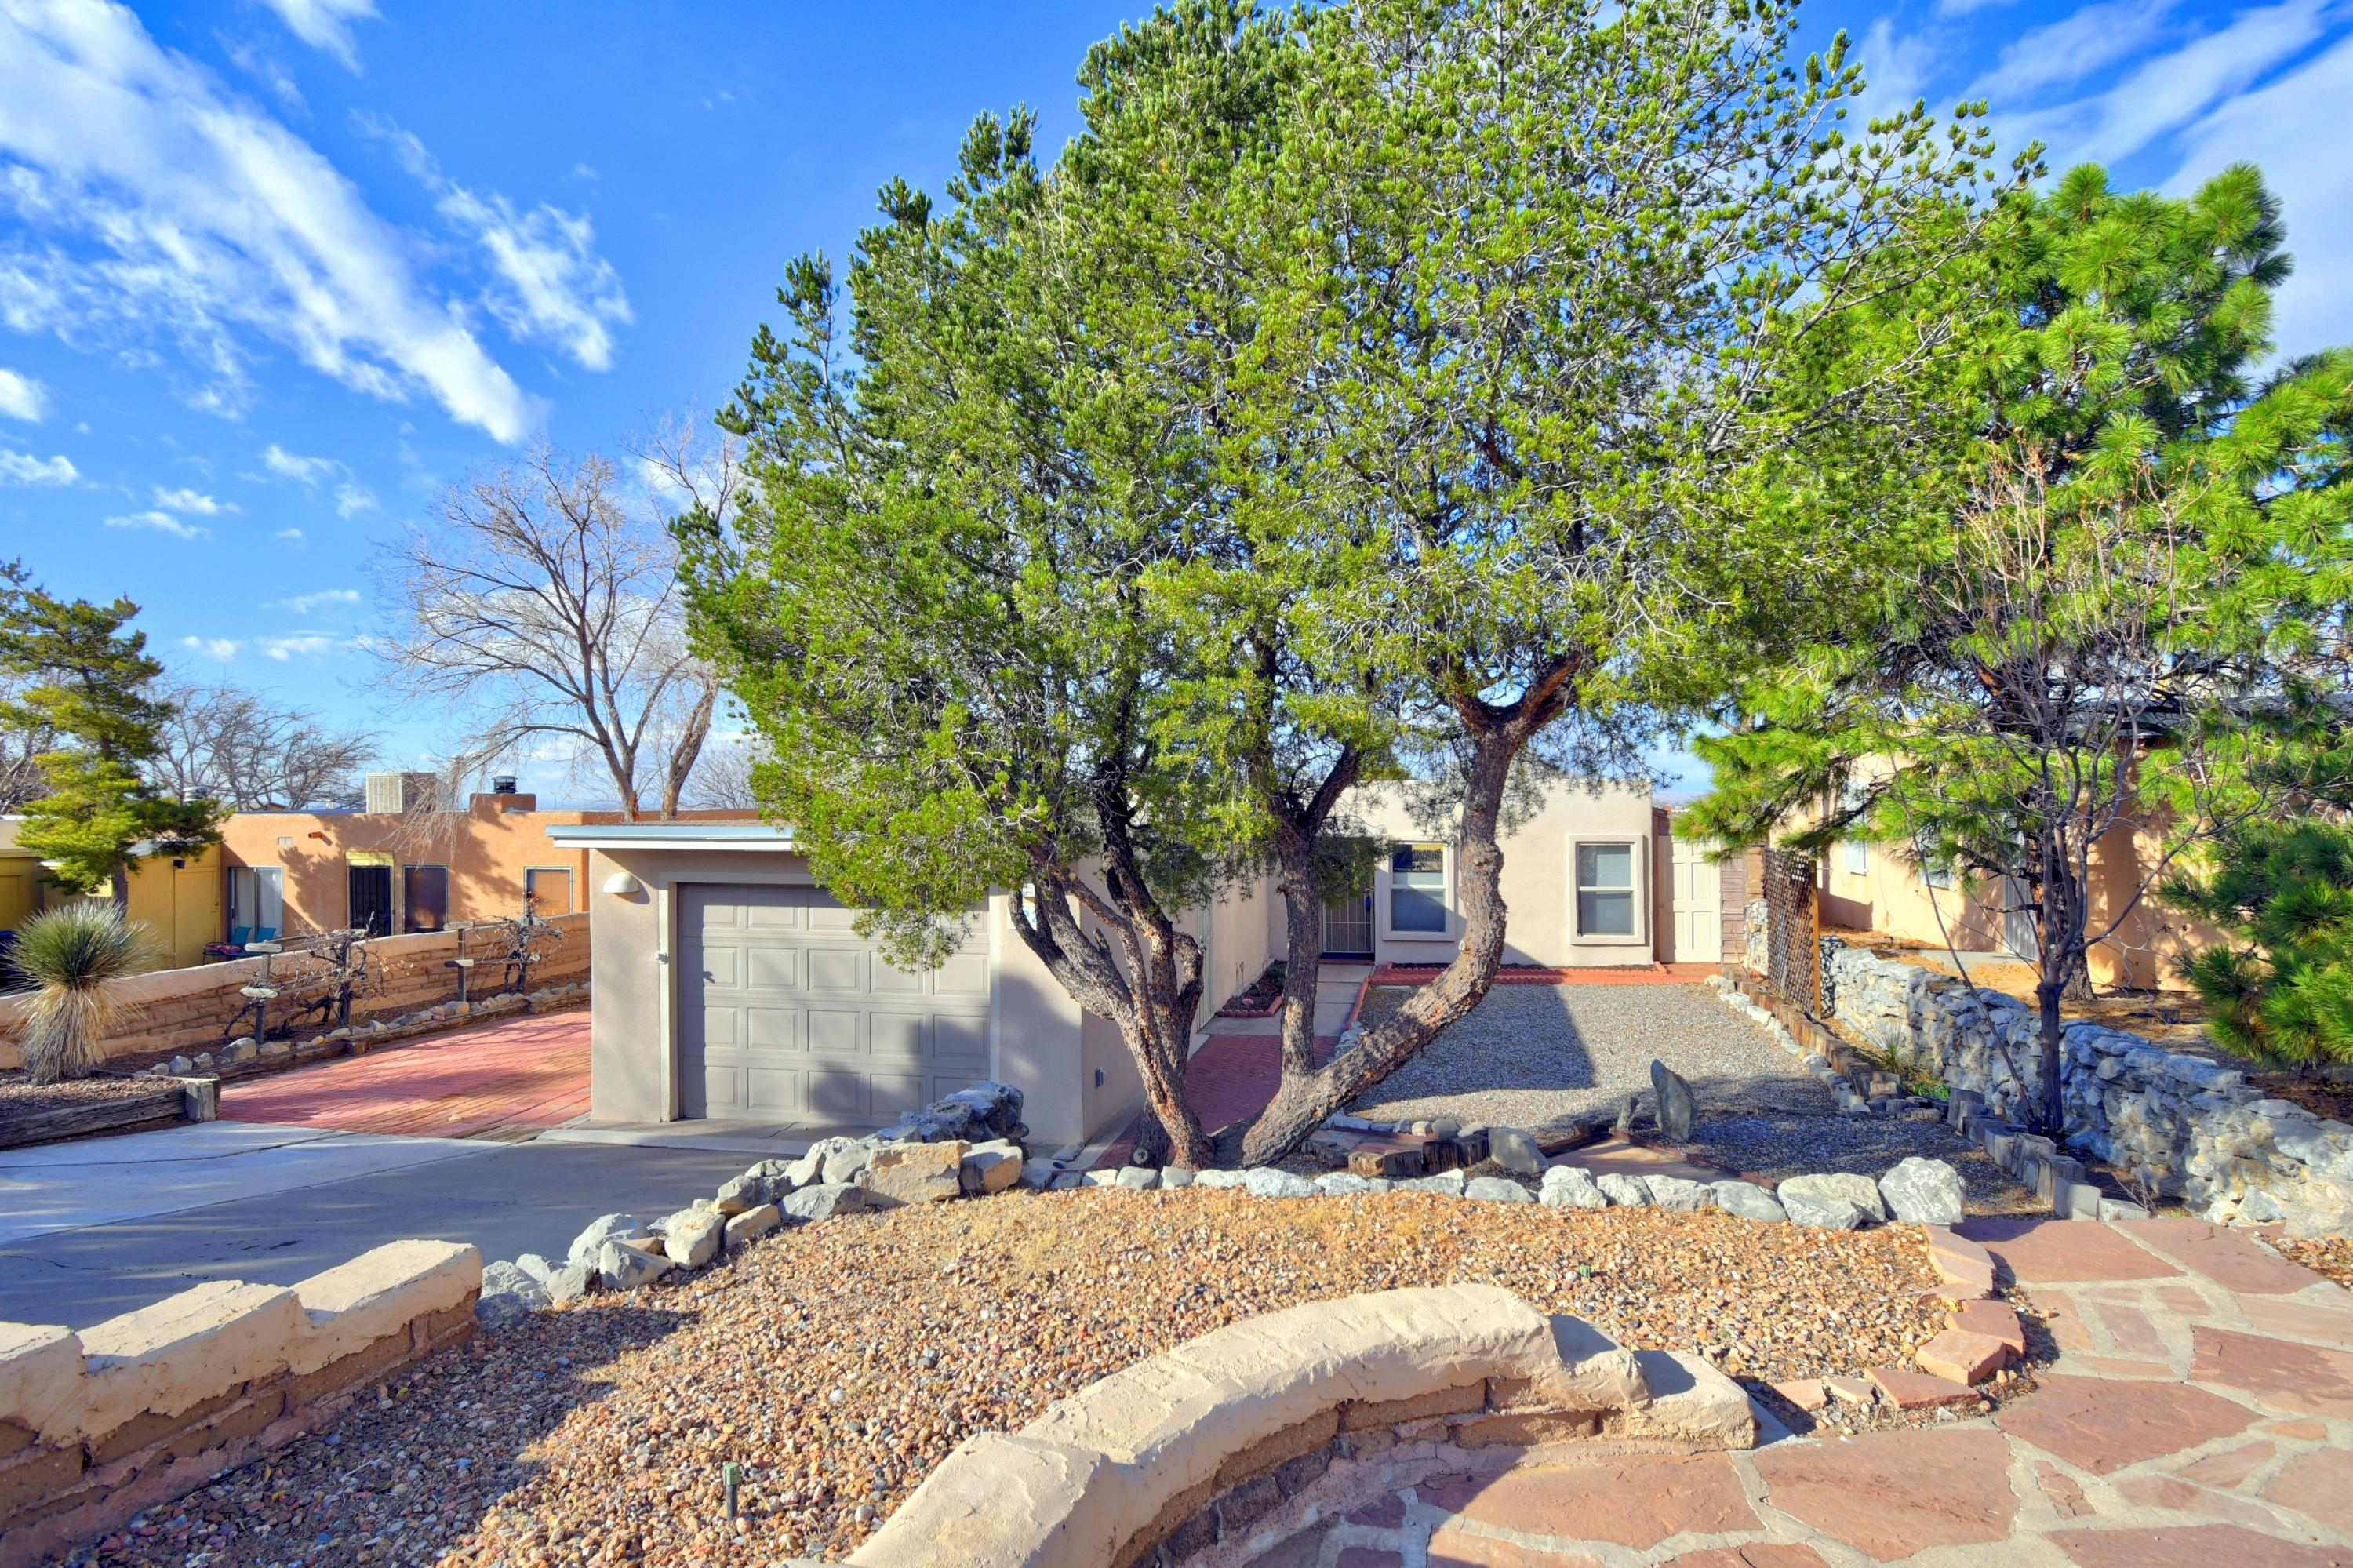 Open & spacious Casita, loaded w/extras & artistic touches. Enjoy the Panoramic sunset & city views from the Dining RM clerestory windows & backyard.  Awesome private courtyard w/covered patio/breezeway leading to the oversized one-car garage. Wood beamed ceilings & handcrafted living/dining room walls,  custom wood-burning fireplace w/seating benches.  Brick & tile floors, Stained glass, exposed adobe accents, including a full adobe wall in backyard & parts of the front yard. Granite counter tops, updated bathrooms, refrigerated-air, updated windows, 2 doggie doors. Handcrafter ceiling & walls in Office/3rd BR.  Don't miss the Garden Shed & the Man-Cave Workshop! Enjoy easy access to I-40, Kirtland Air-Force Base, nearby grocery stores, restaurants, shopping centers & foothills trails.